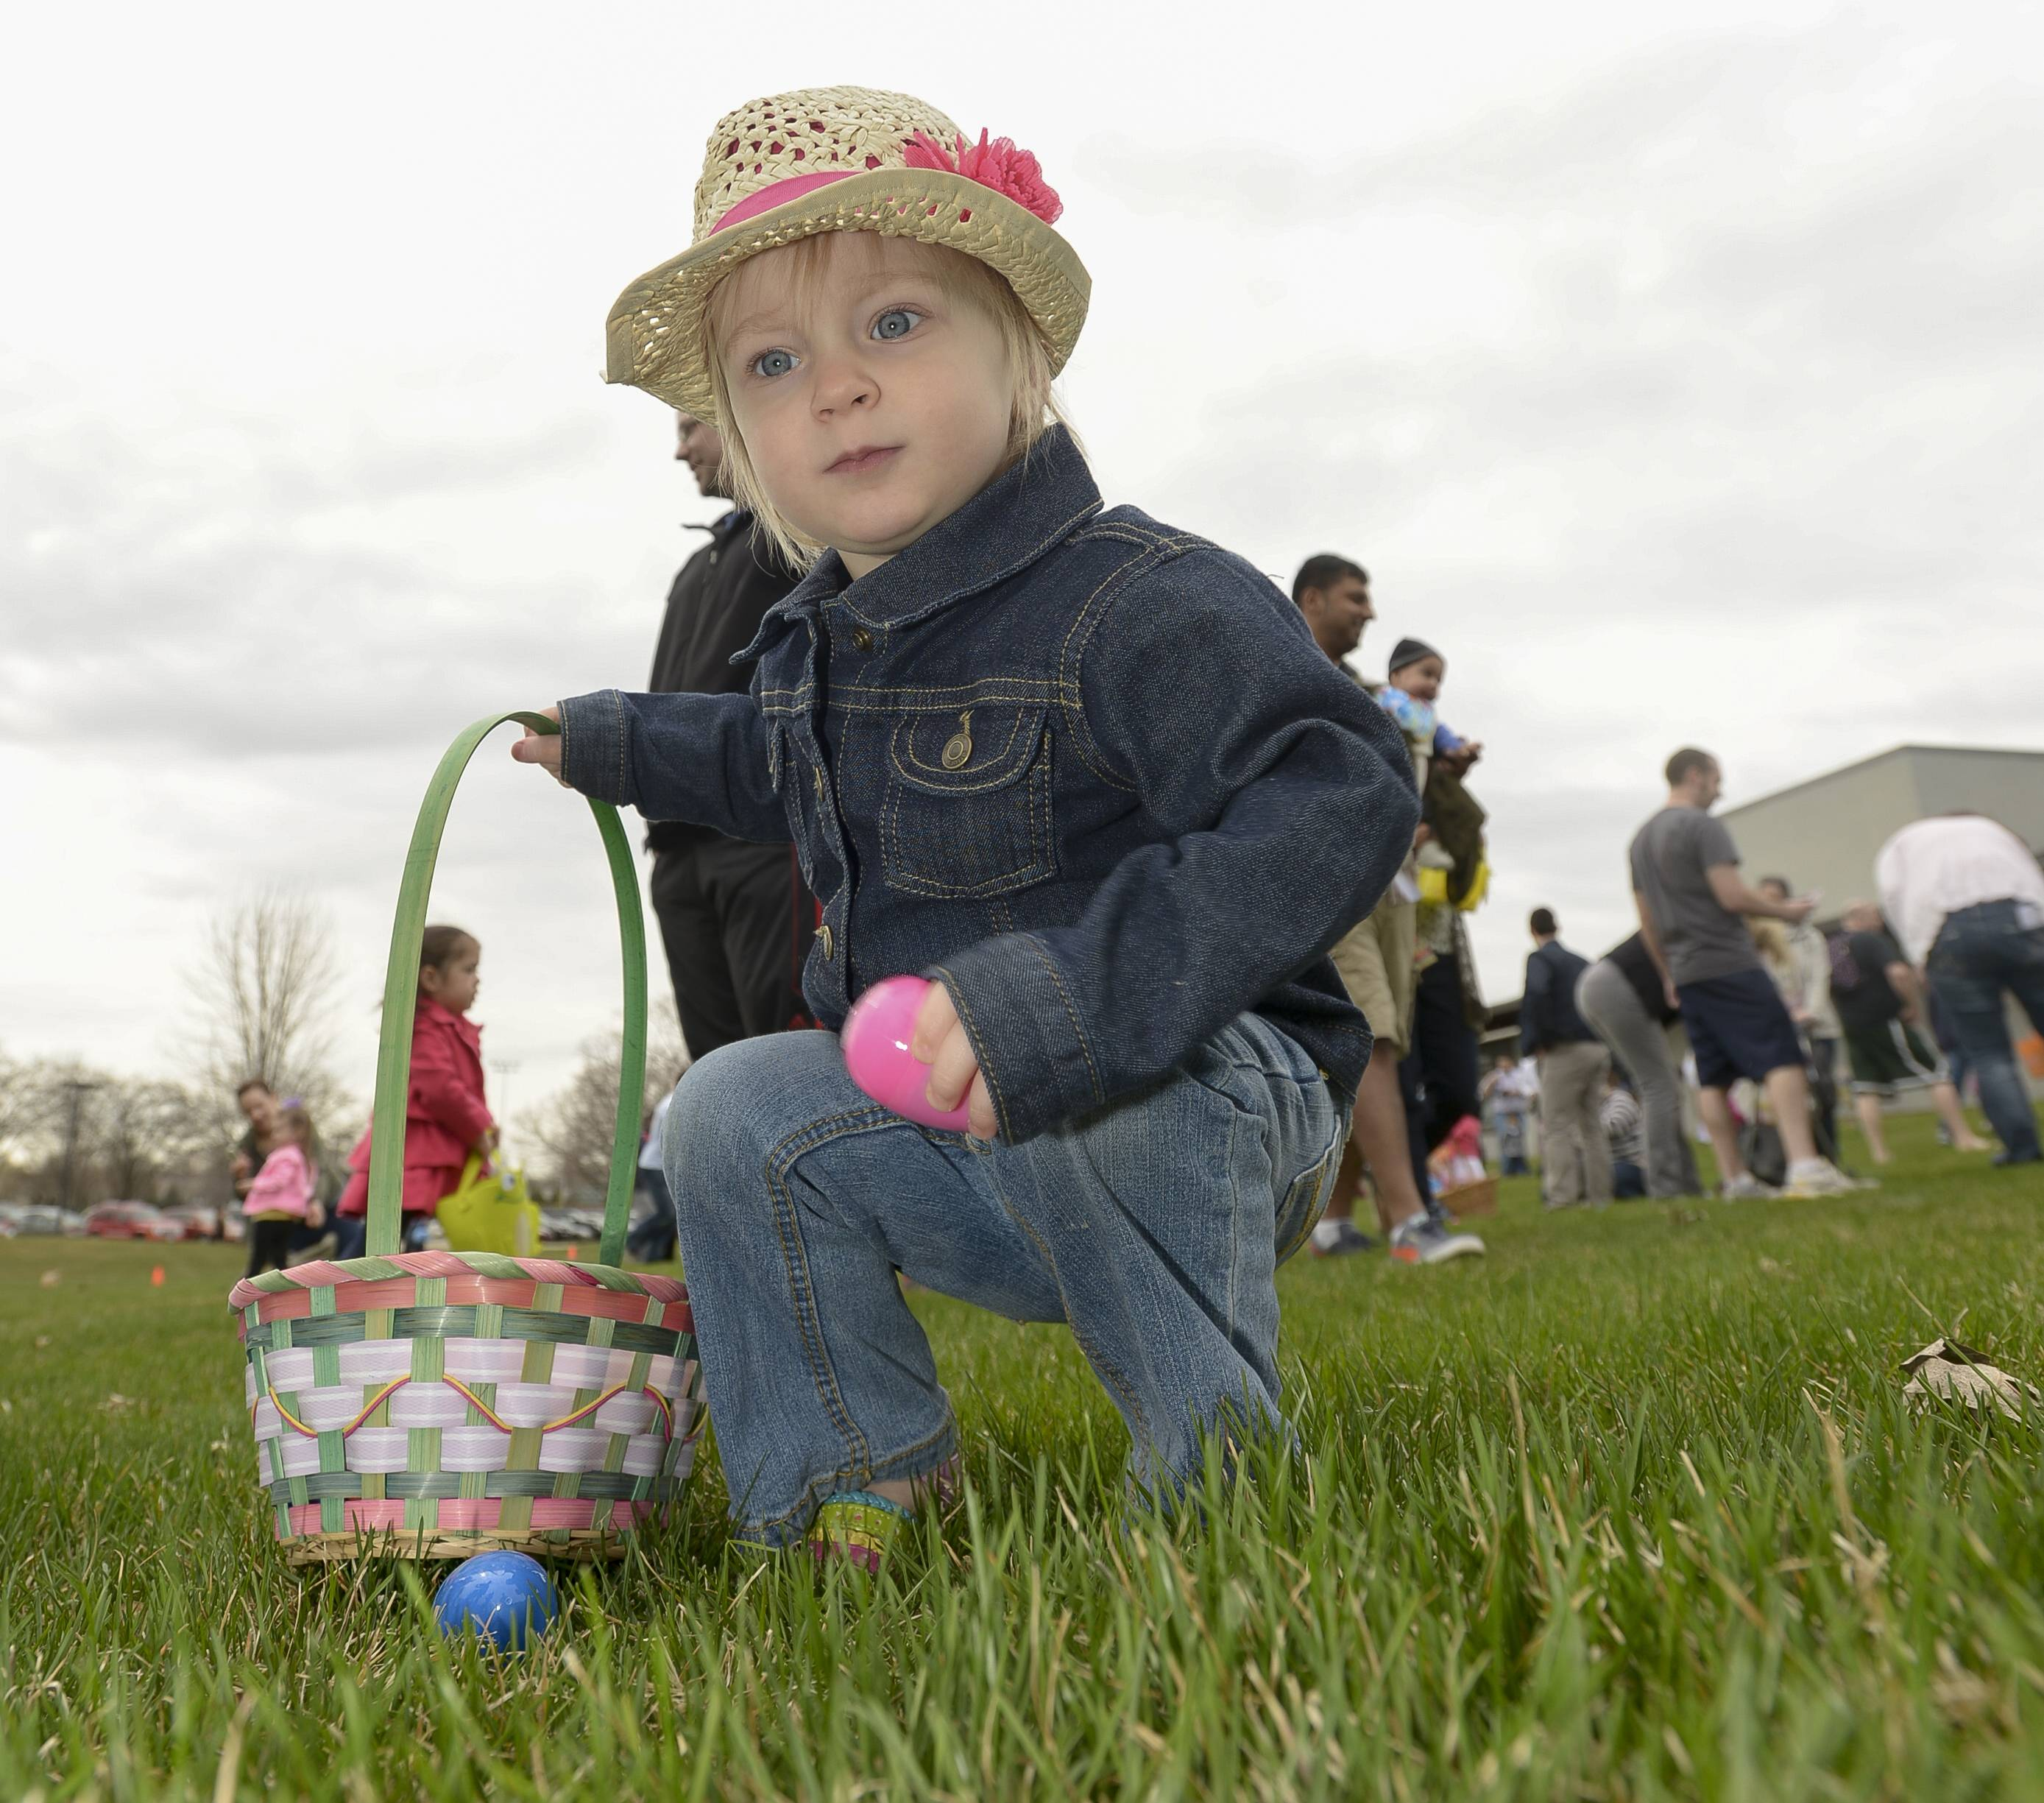 Rebecca Larsen, 2, of Lisle, collects a plastic egg during an Easter egg hunt Saturday at Lisle's Community Park.